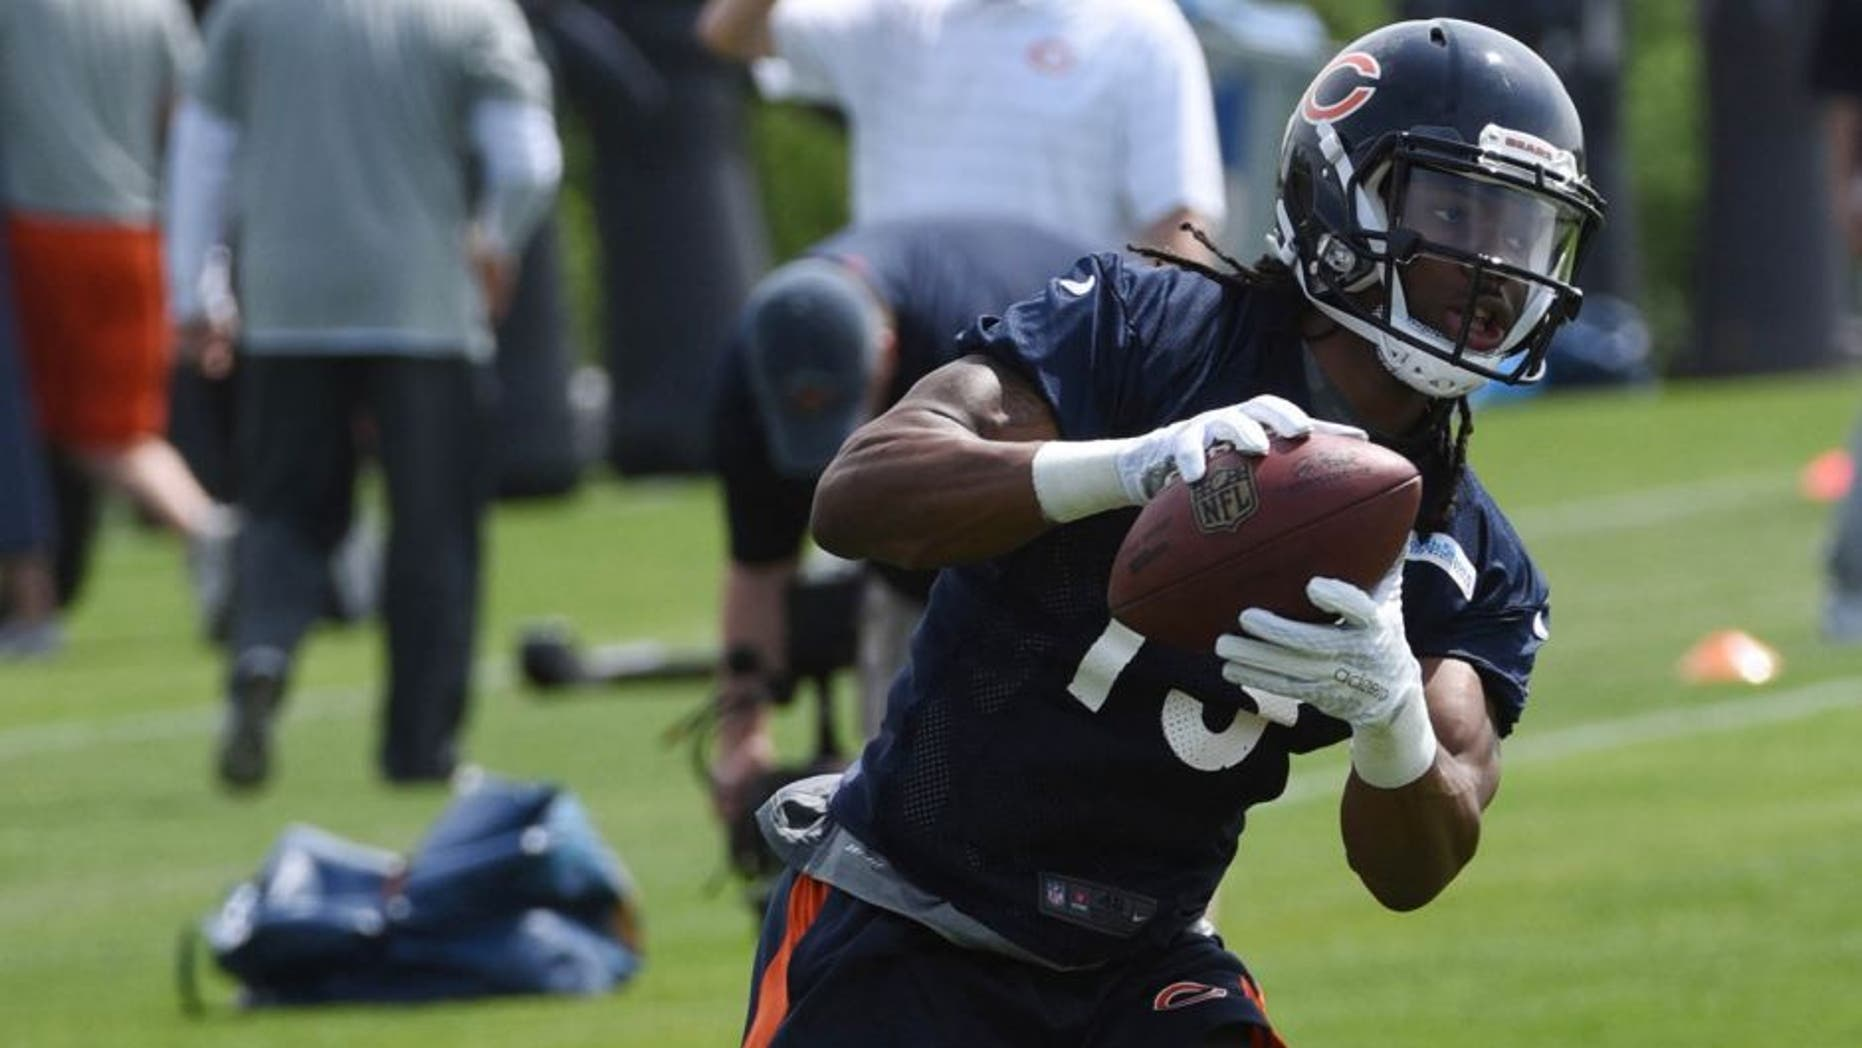 May 8, 2015; Lake Forest, IL, USA; Chicago Bears wide receiver Kevin White (13) during Chicago Bears rookie minicamp at Halas Hall. Mandatory Credit: David Banks-USA TODAY Sports